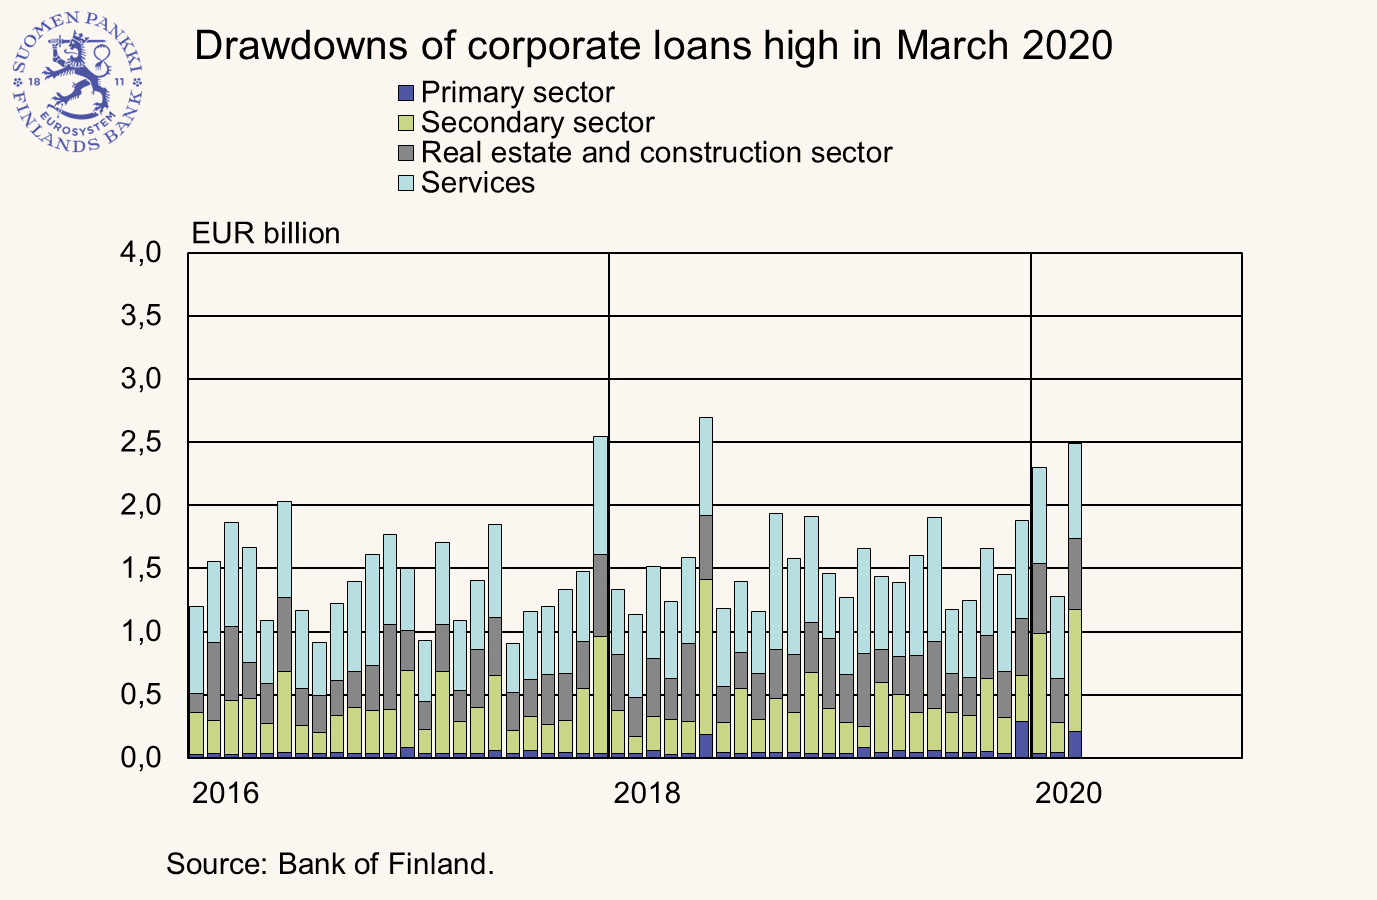 Drawdowns of large corporate loans high in March 2020